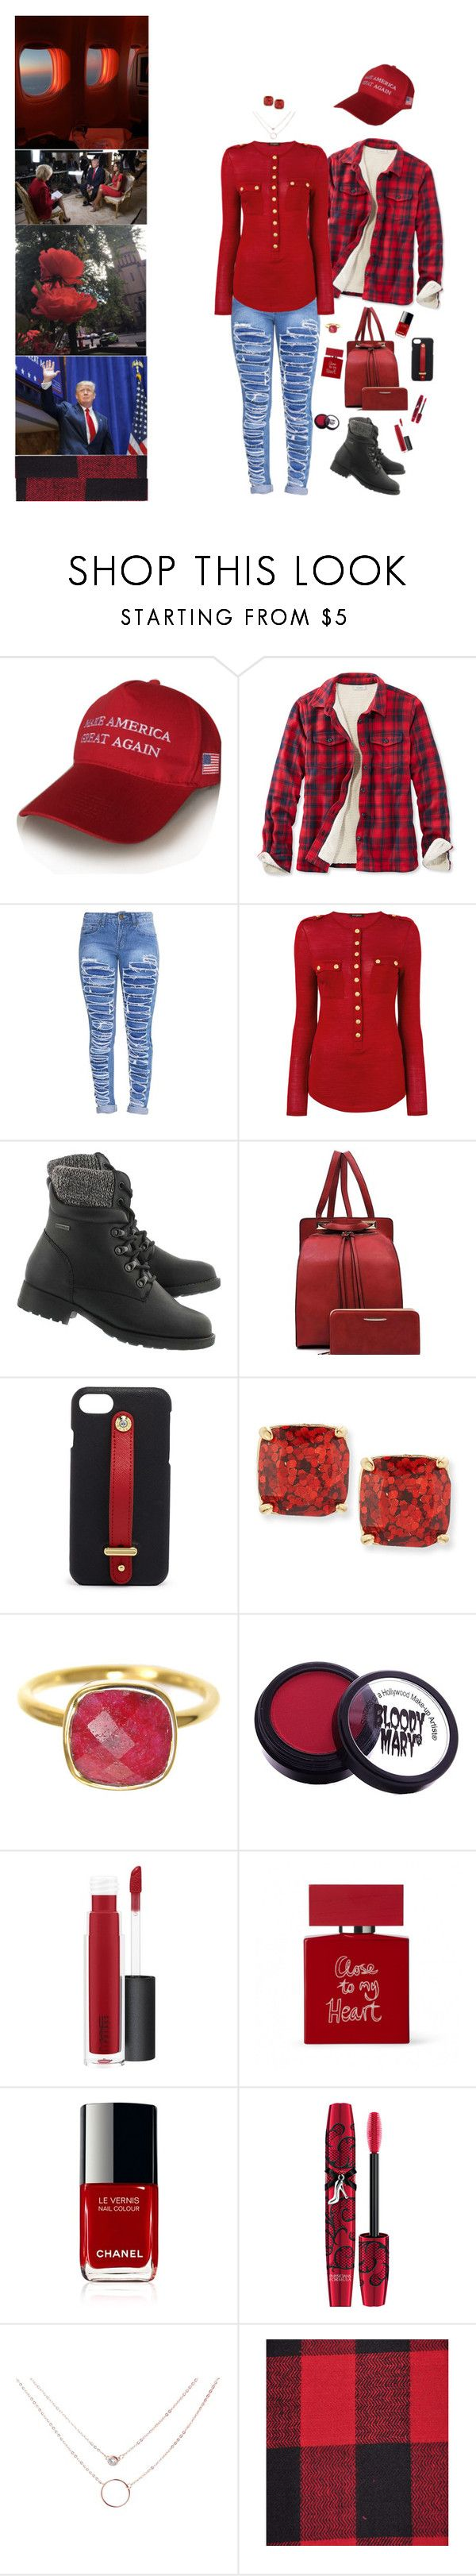 """Make Her Great Again"" by blackmagicmomma ❤ liked on Polyvore featuring L.L.Bean, Balmain, Henri Bendel, Kate Spade, John Lewis, Bella Freud, Physicians Formula and Trump Home"